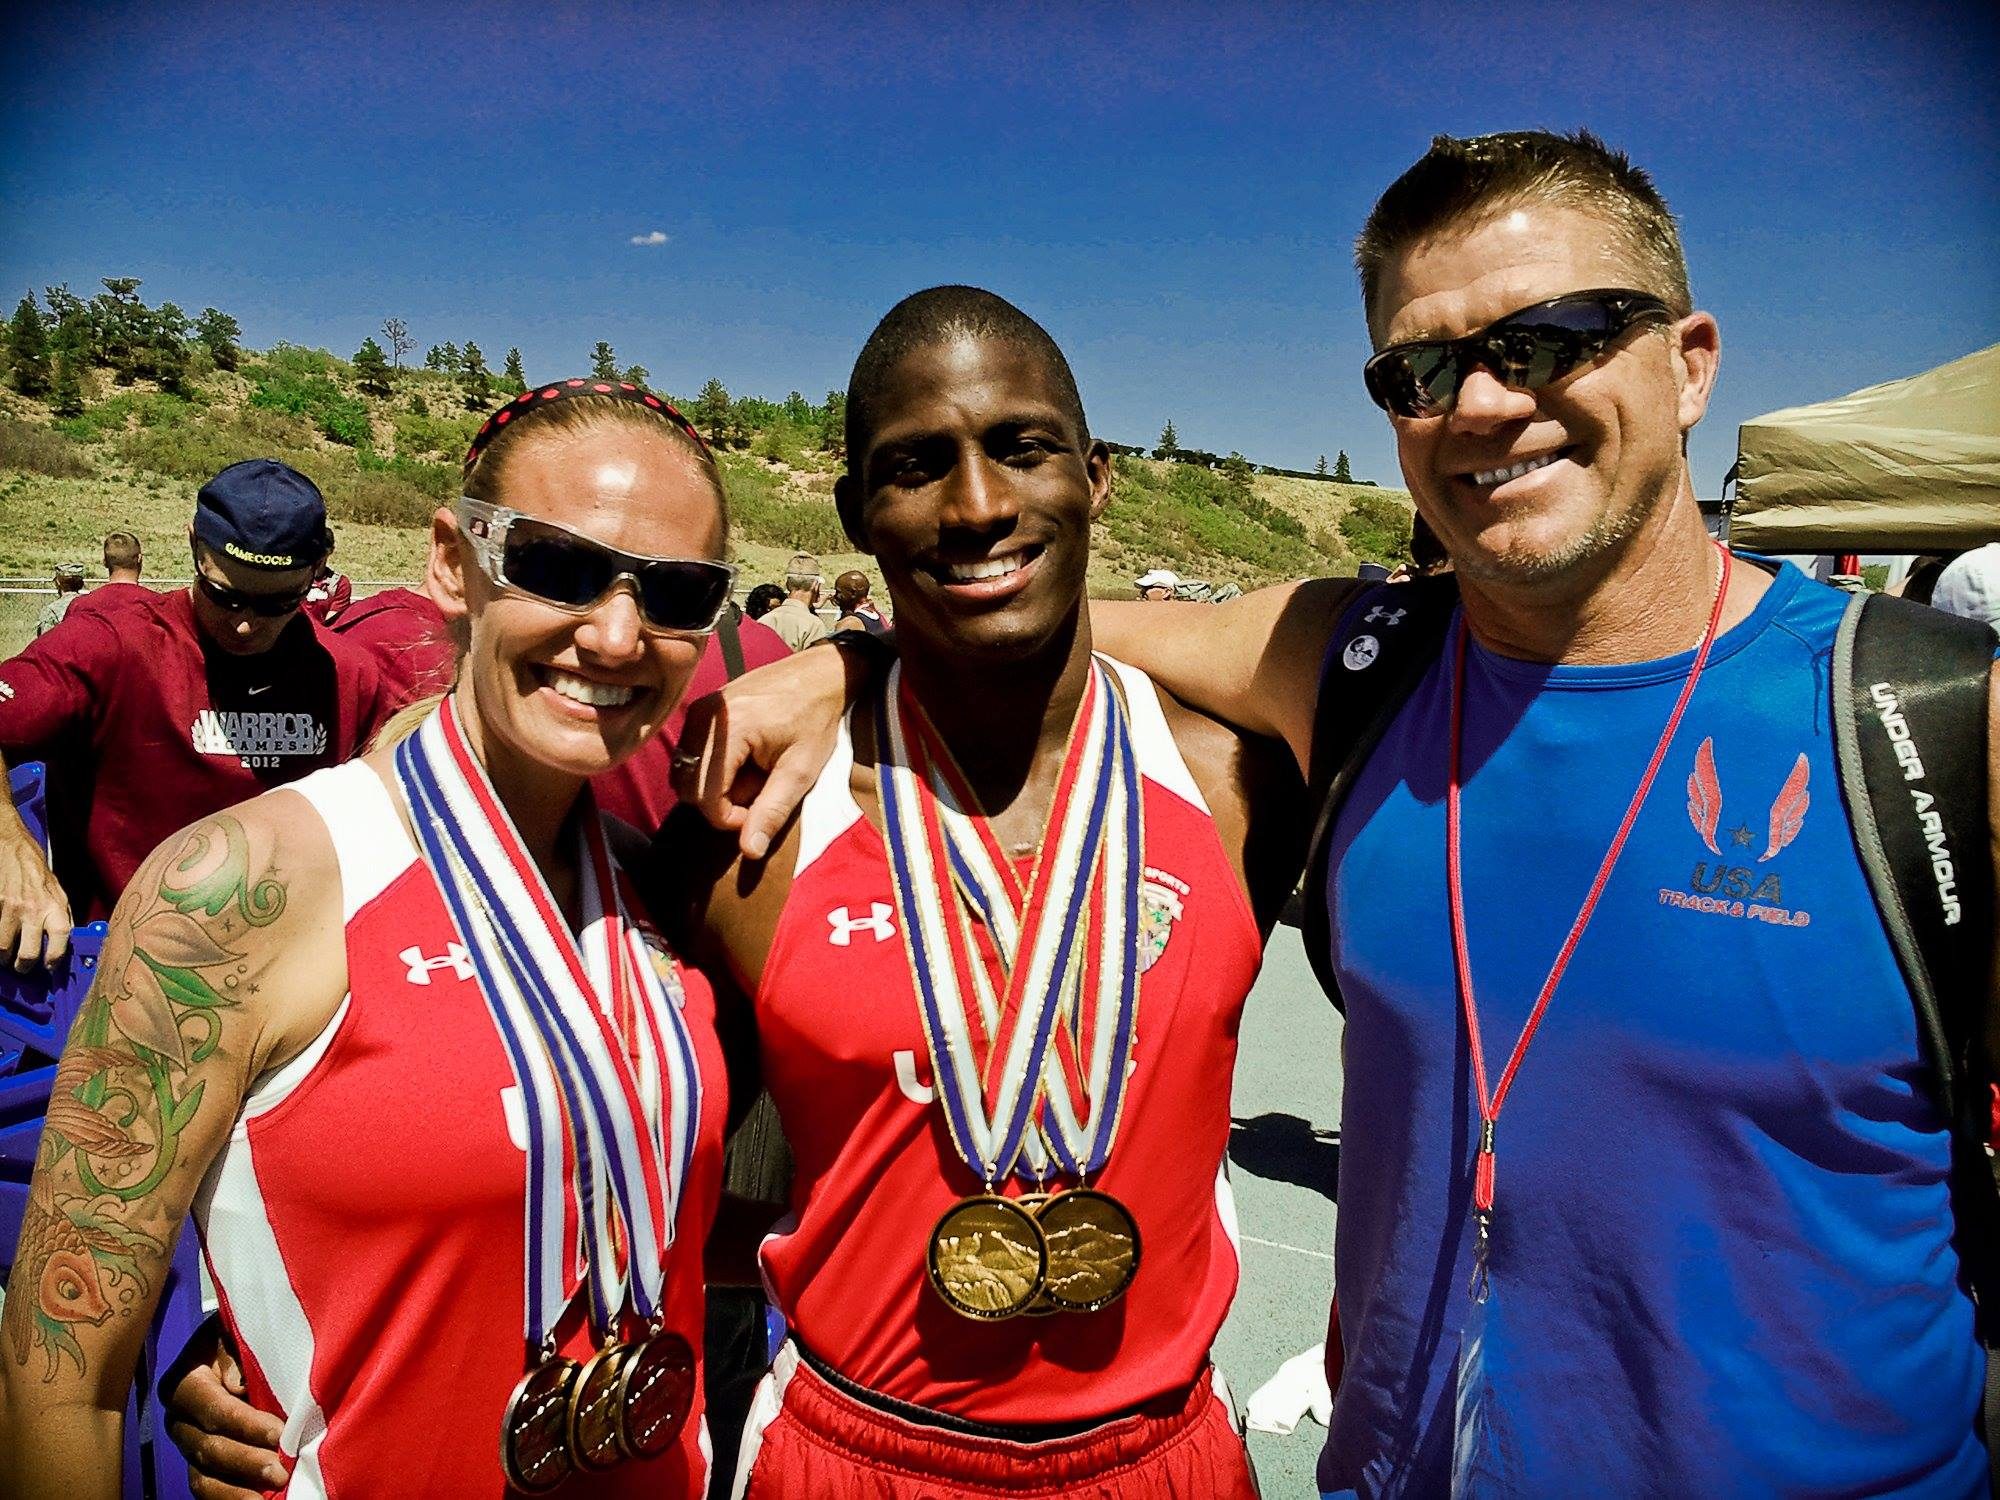 Daniel Smith with Marine athletes at the 2012 Warrior Games